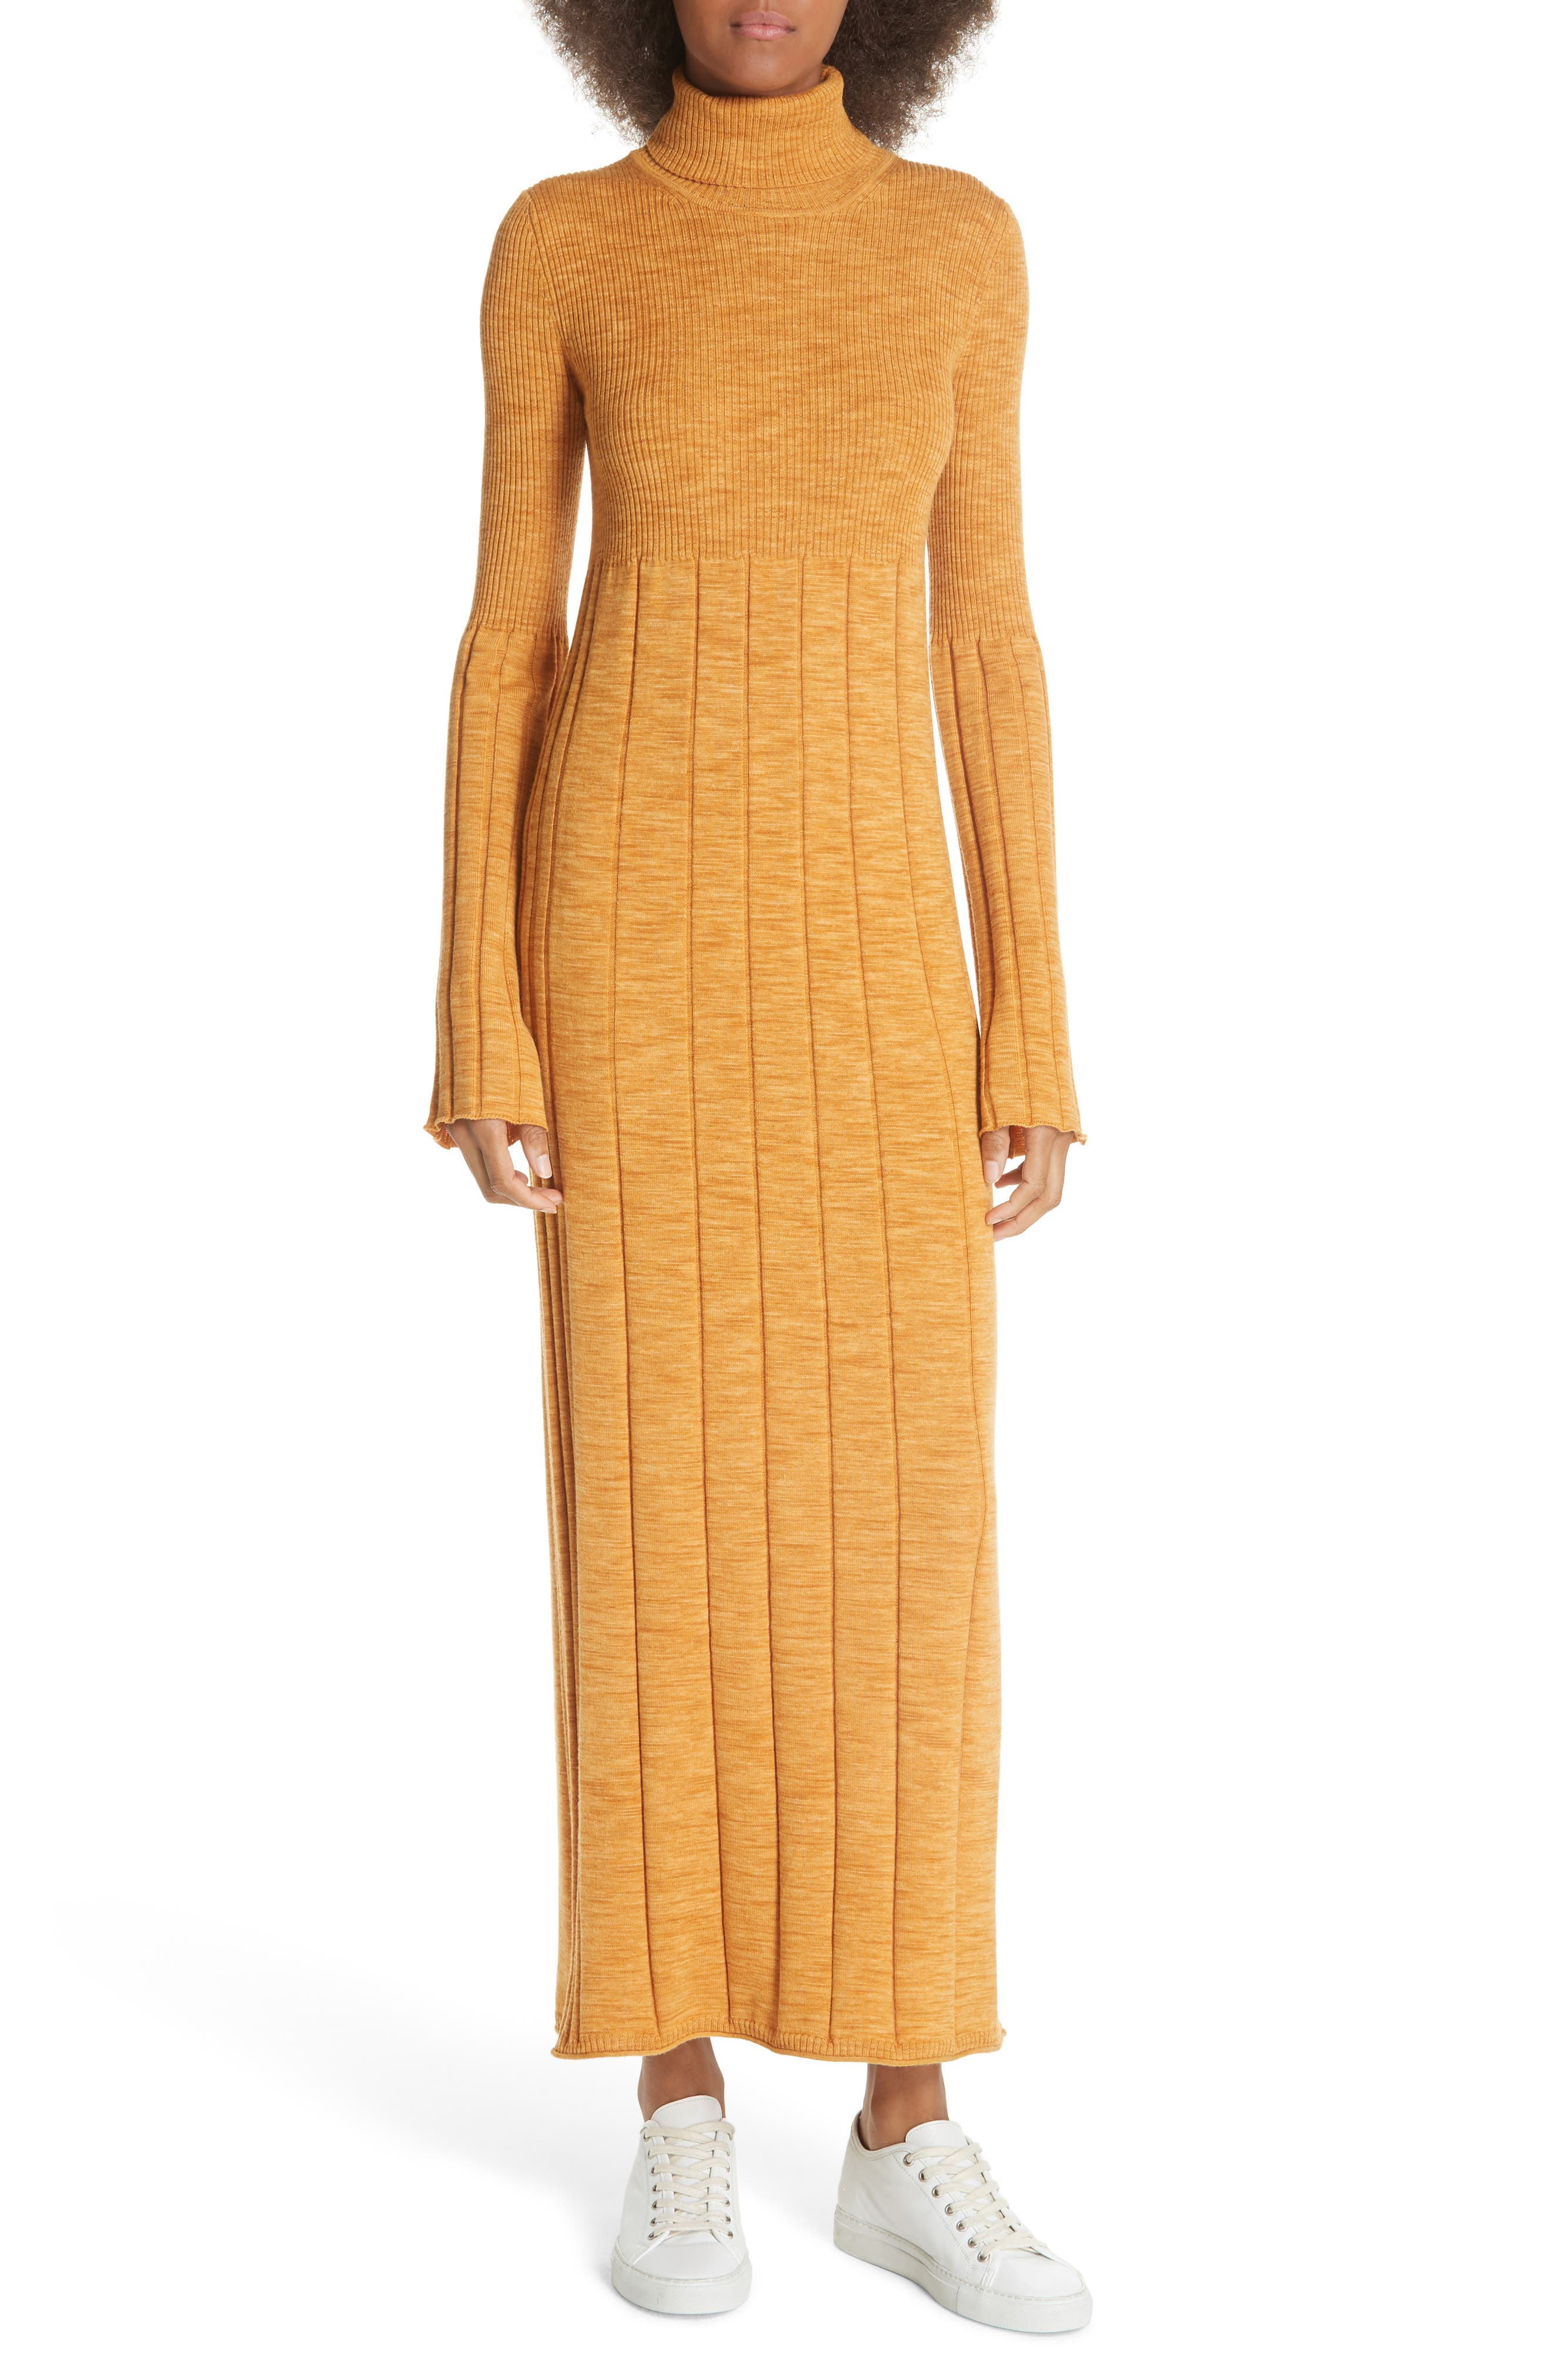 Clementine Ribbed Space Dye Wool Dress,                             Main thumbnail 1, color,                             700